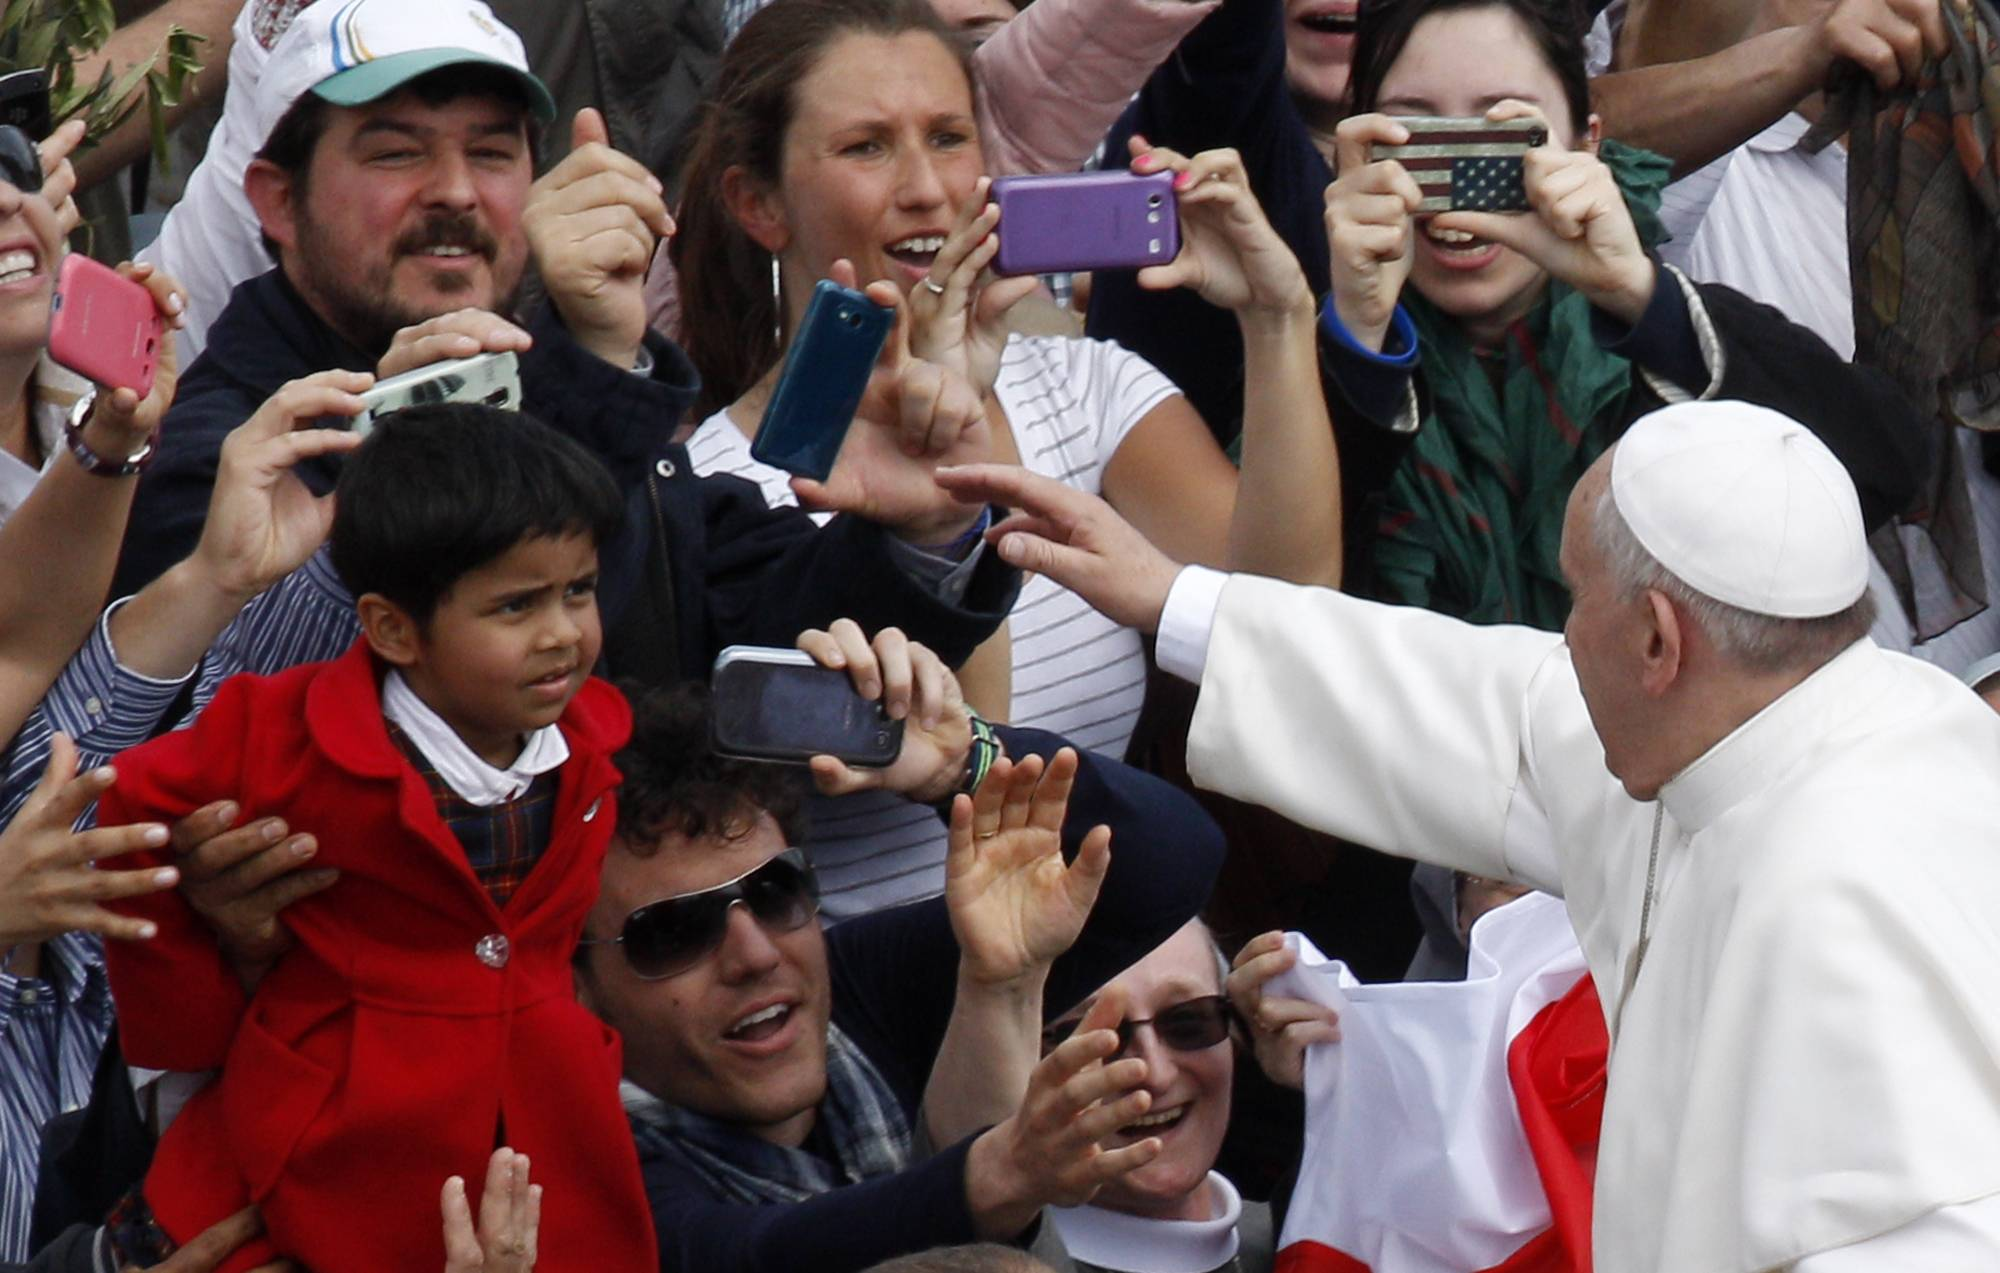 Pope Francis greets faithful at the end of the Palm Sunday Mass in St. Peter's Square at the Vatican on Sunday.